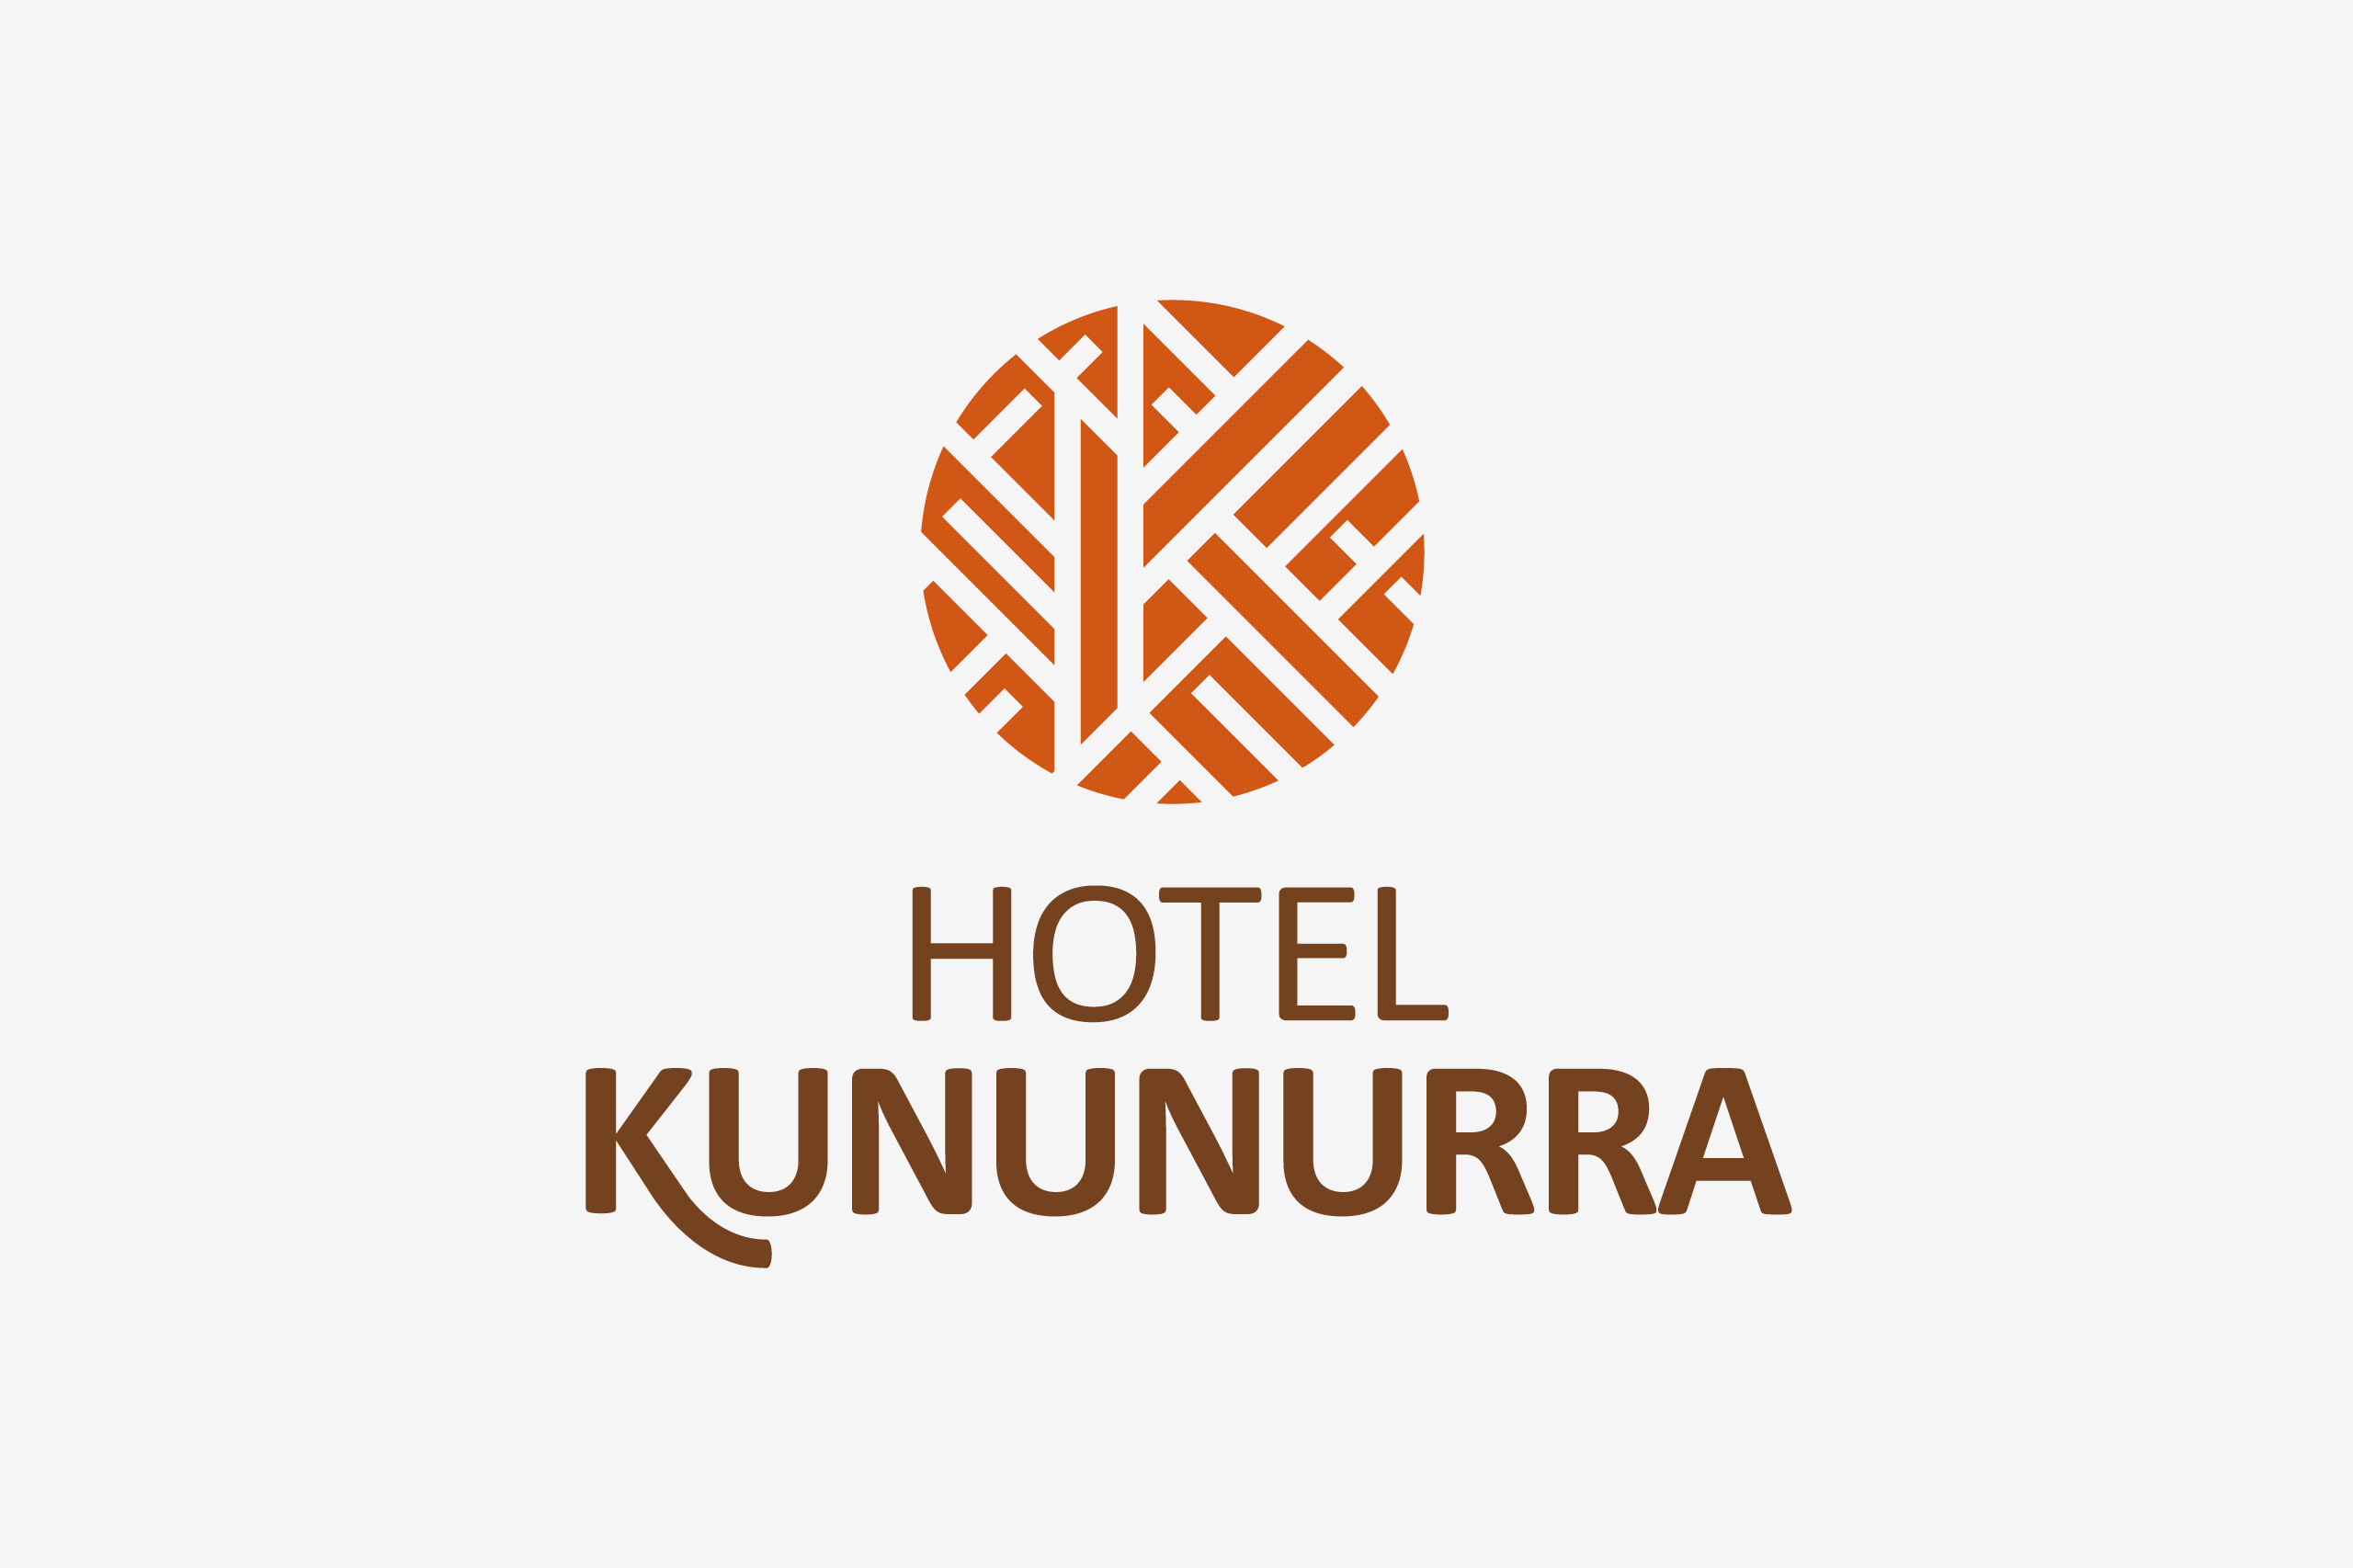 hotel kununurra logo maker and co design